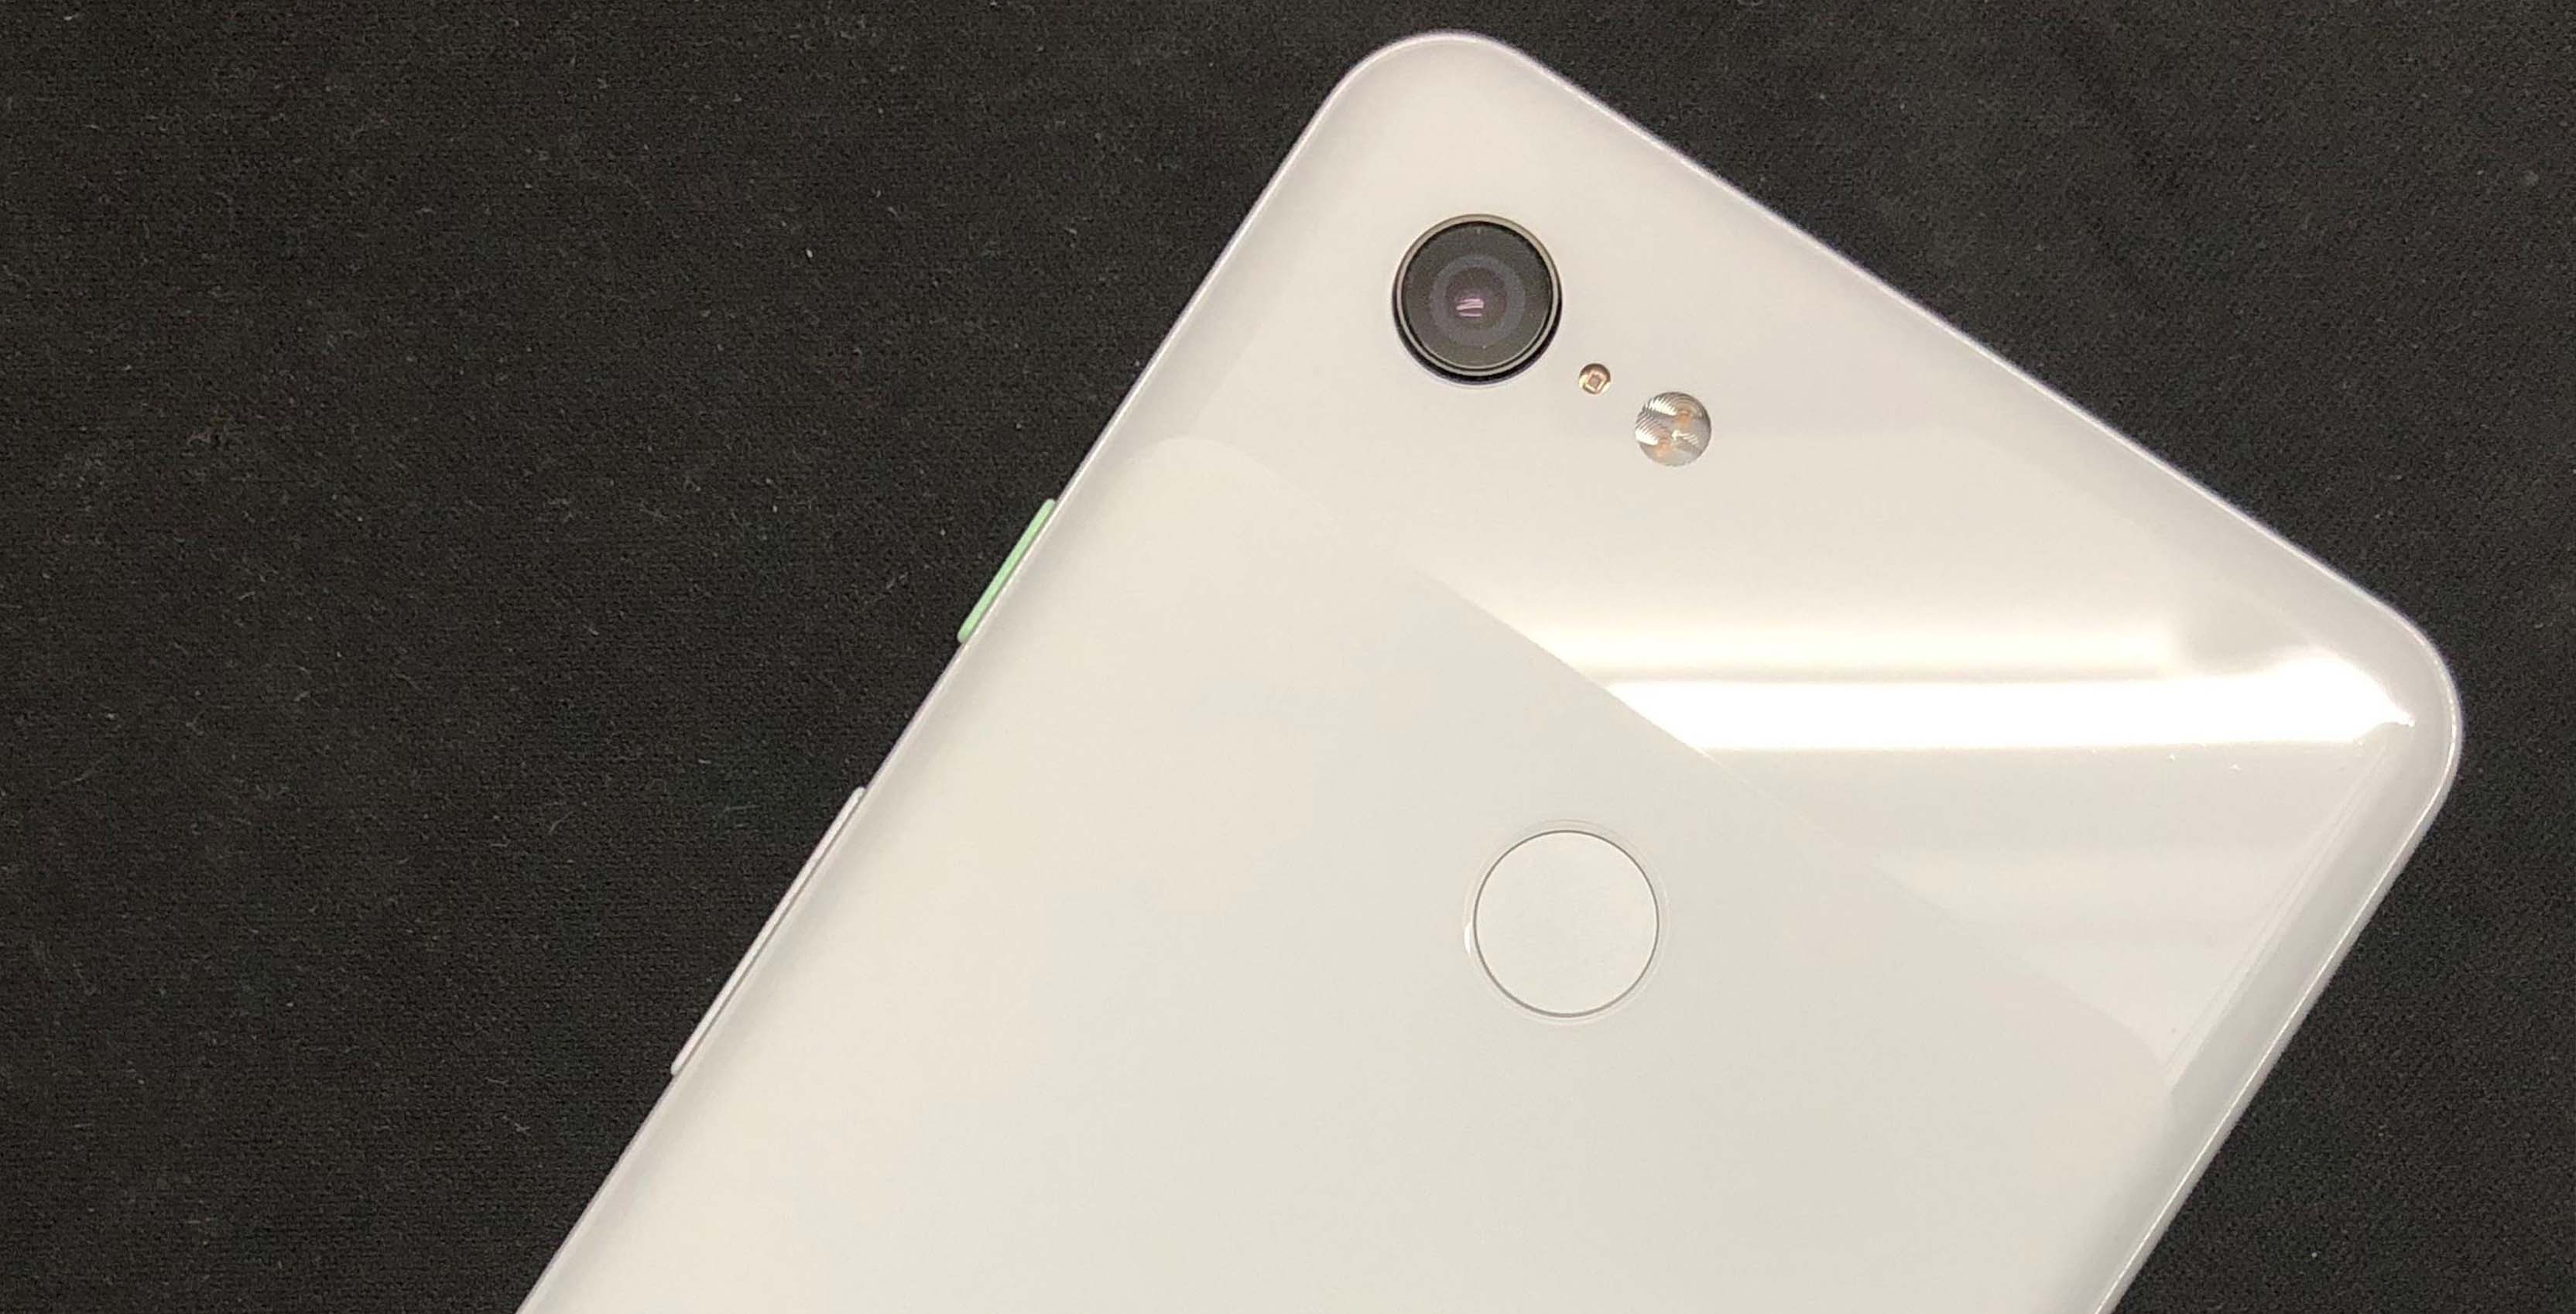 Pixel 3 XL rear via Ishan Agarwal